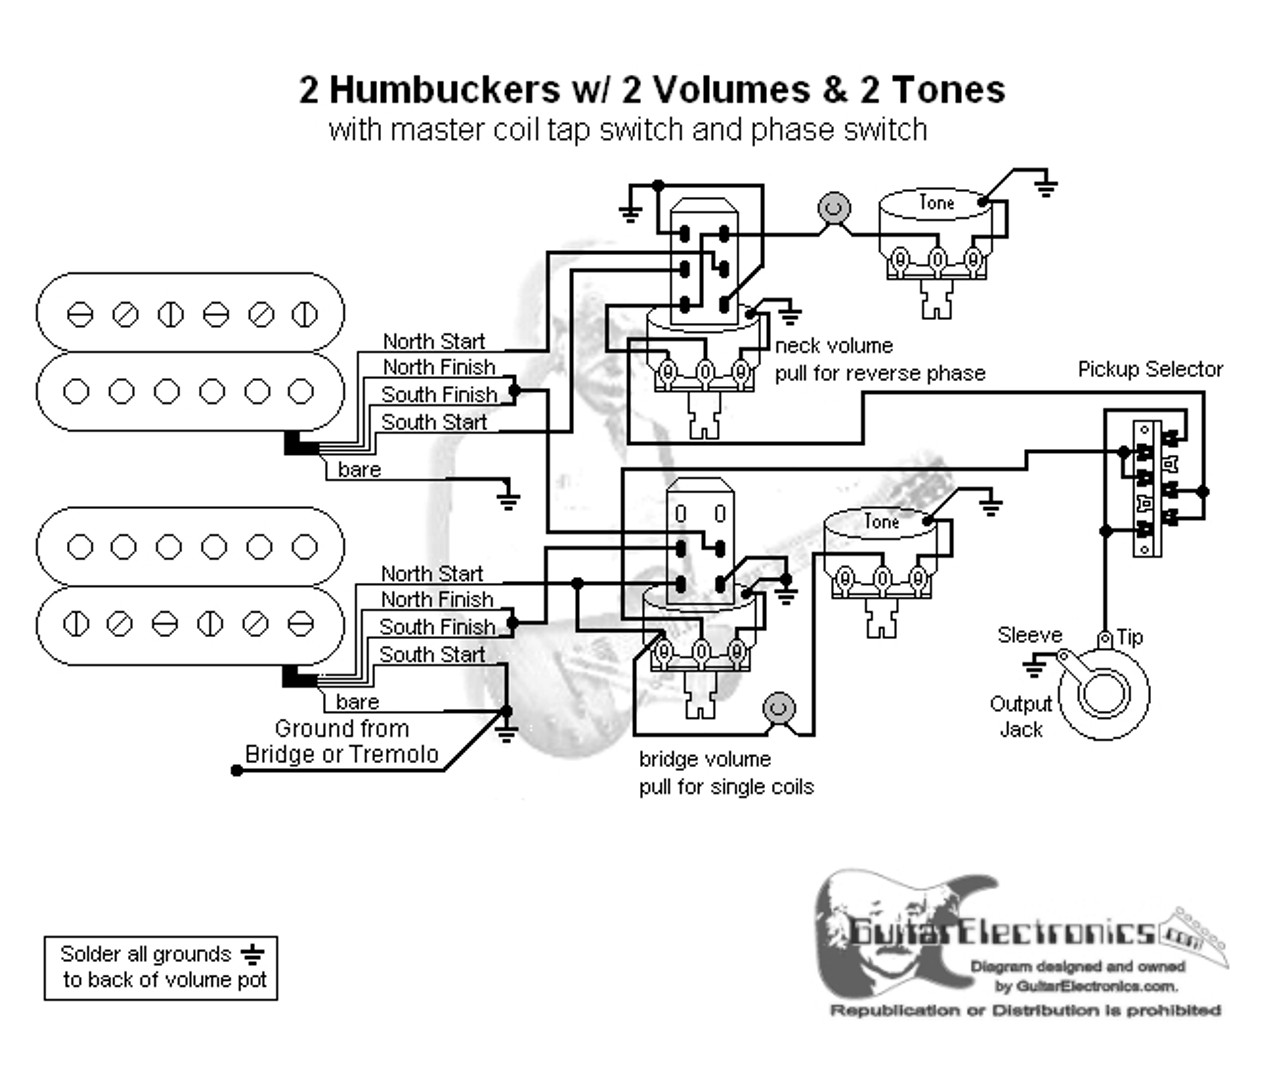 small resolution of 2 hbs 3 way lever 2 vol 2 tones coil tap u0026 reverse phasesound bridge